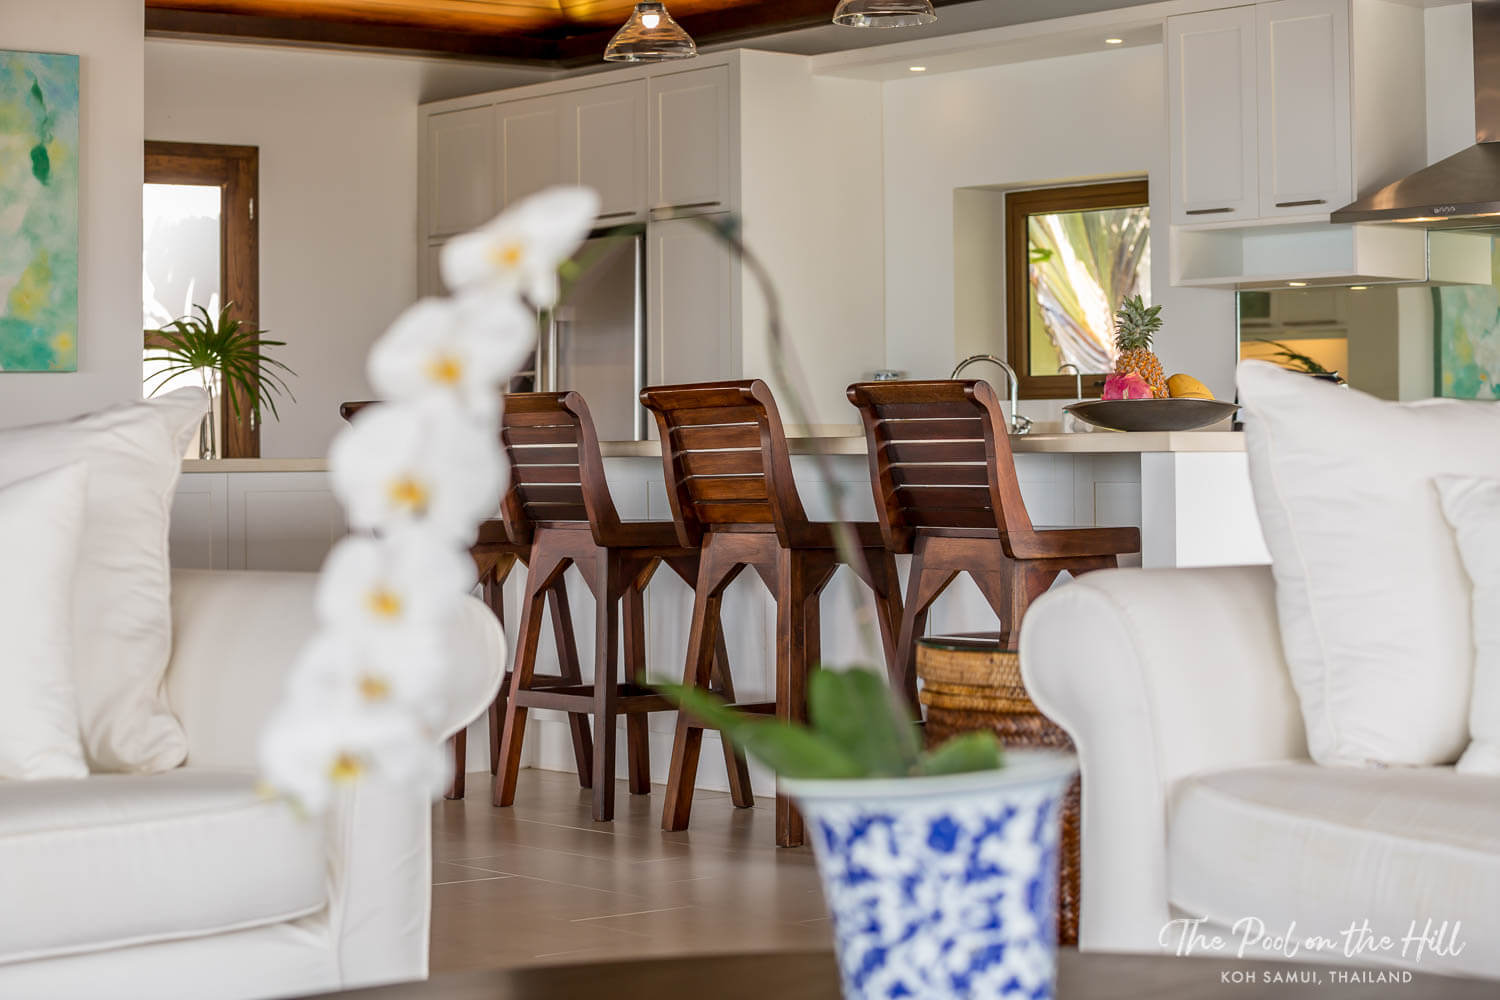 Villa in Thailand: Discover your in-villa dining options at The Pool on the Hill, including pre-stocking grocery services. Tropical Thai fruit is an obvious choice!